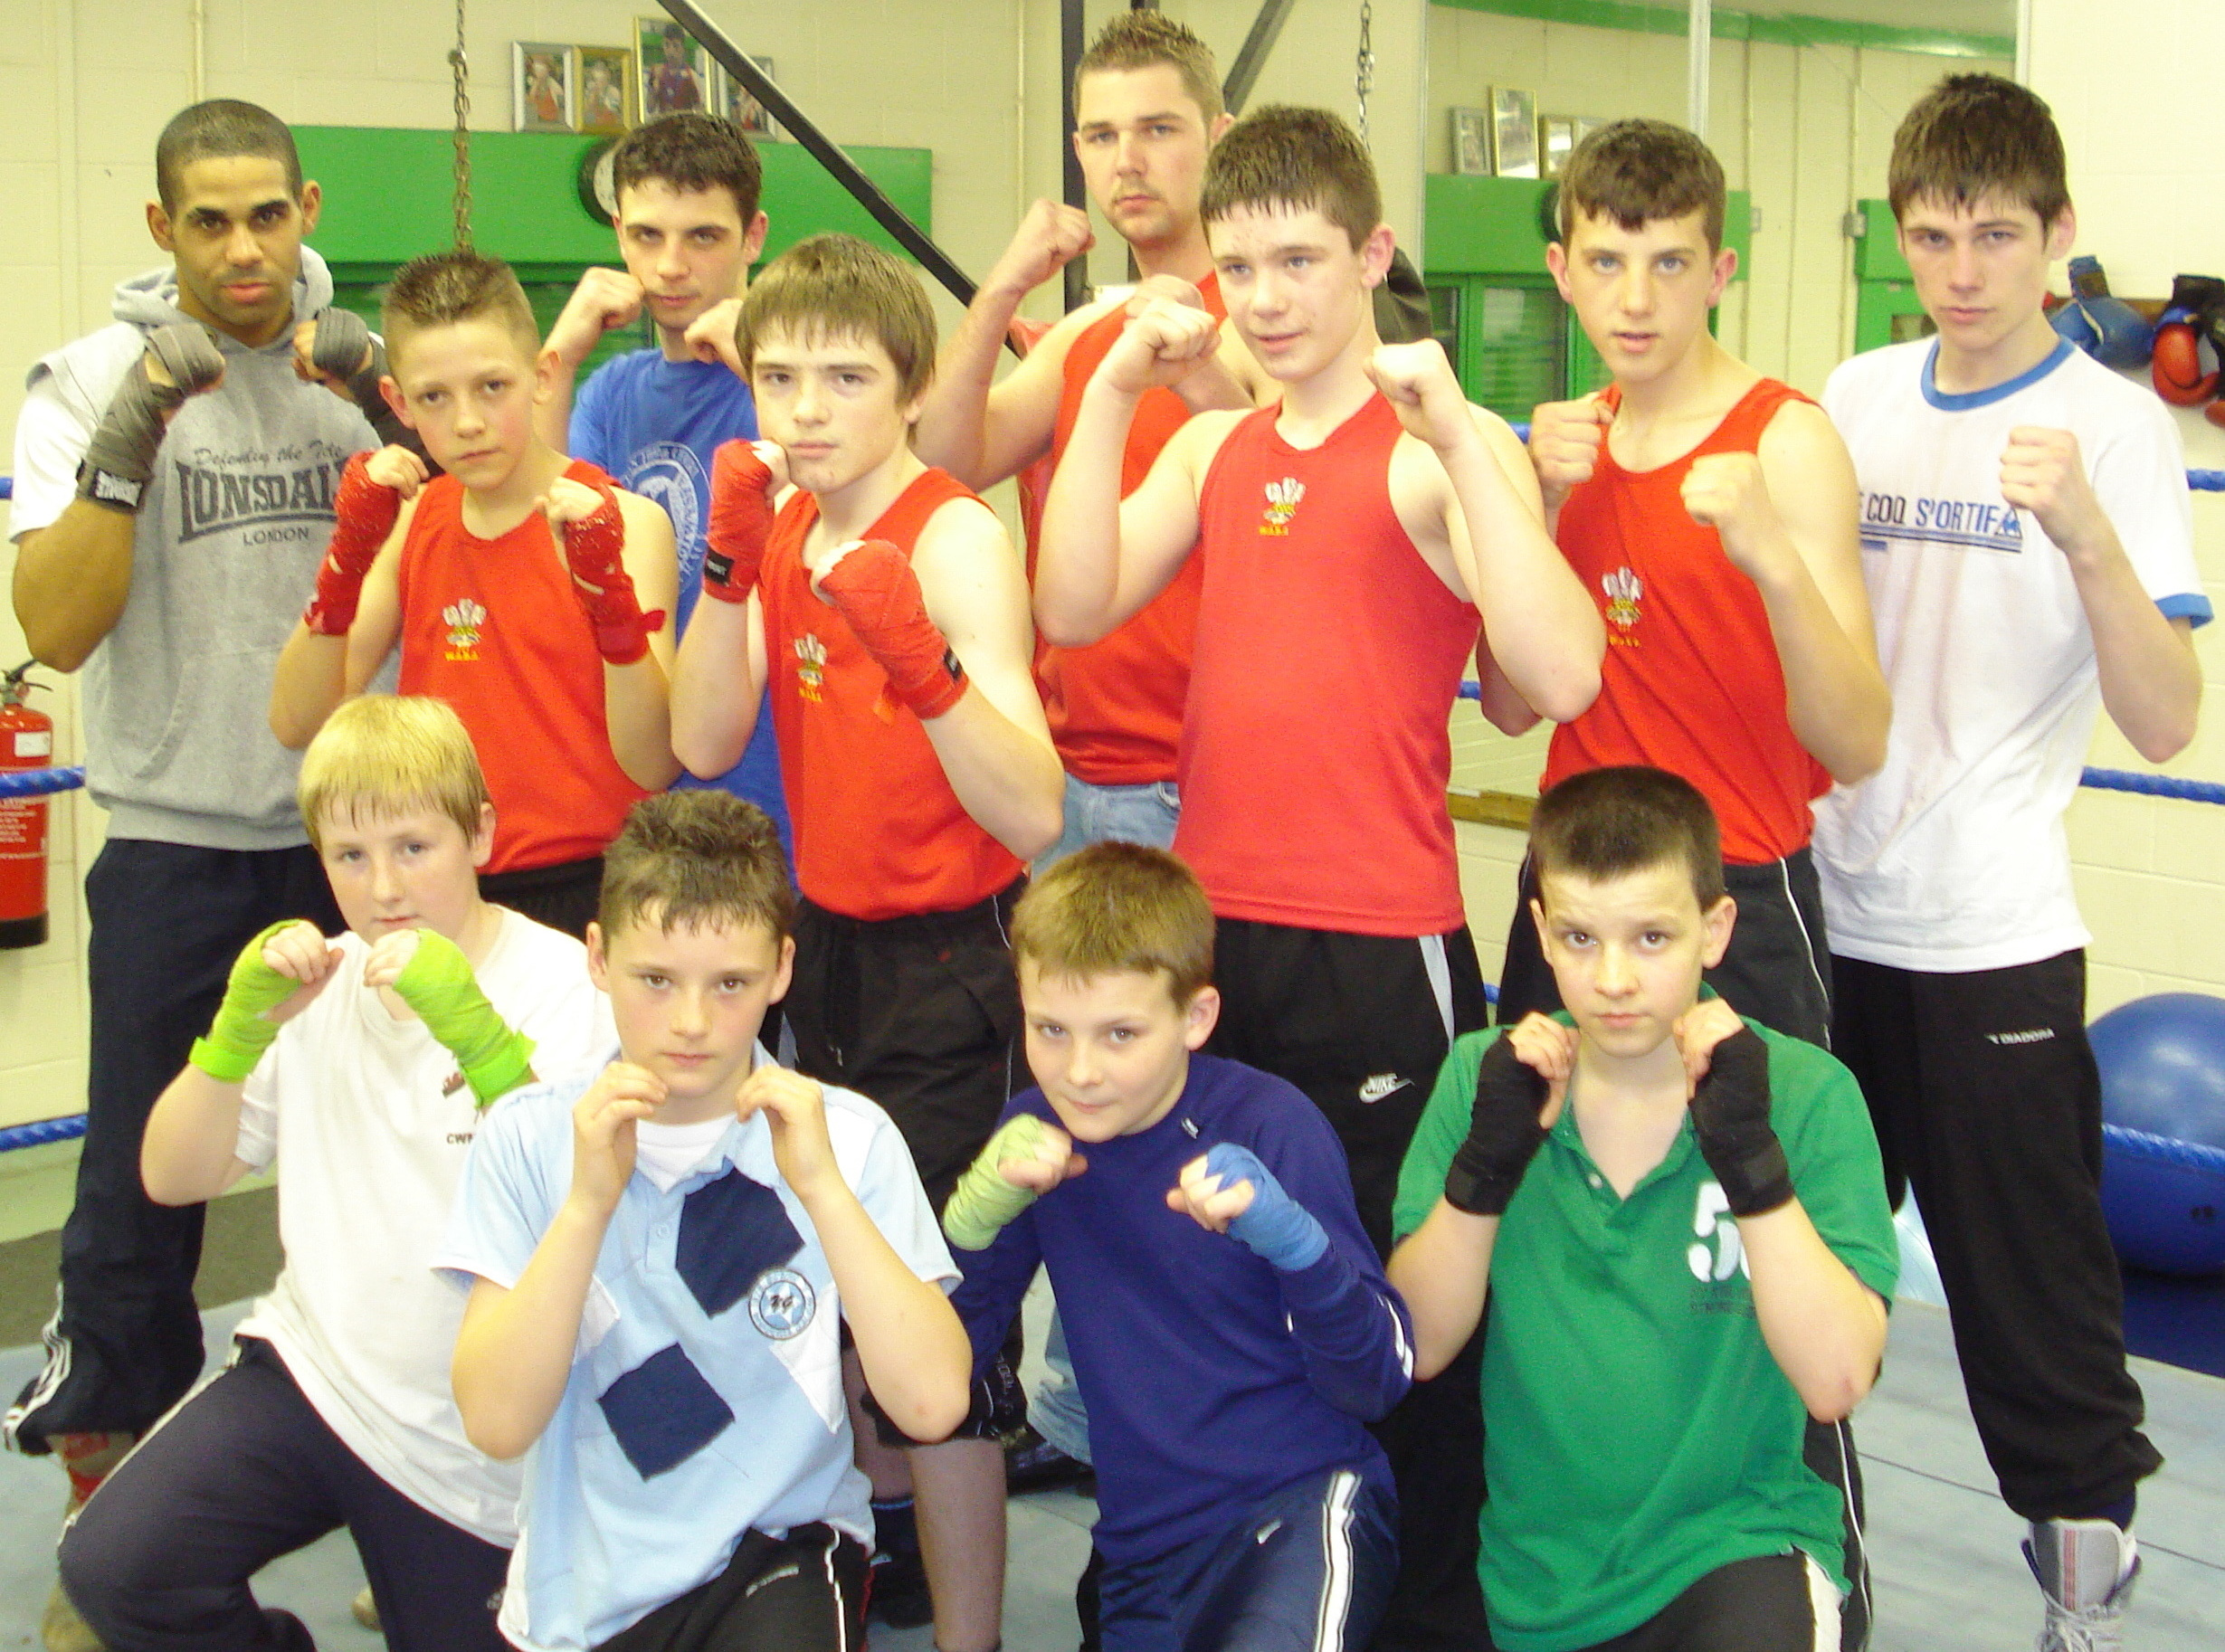 Amateur boxing association of wales